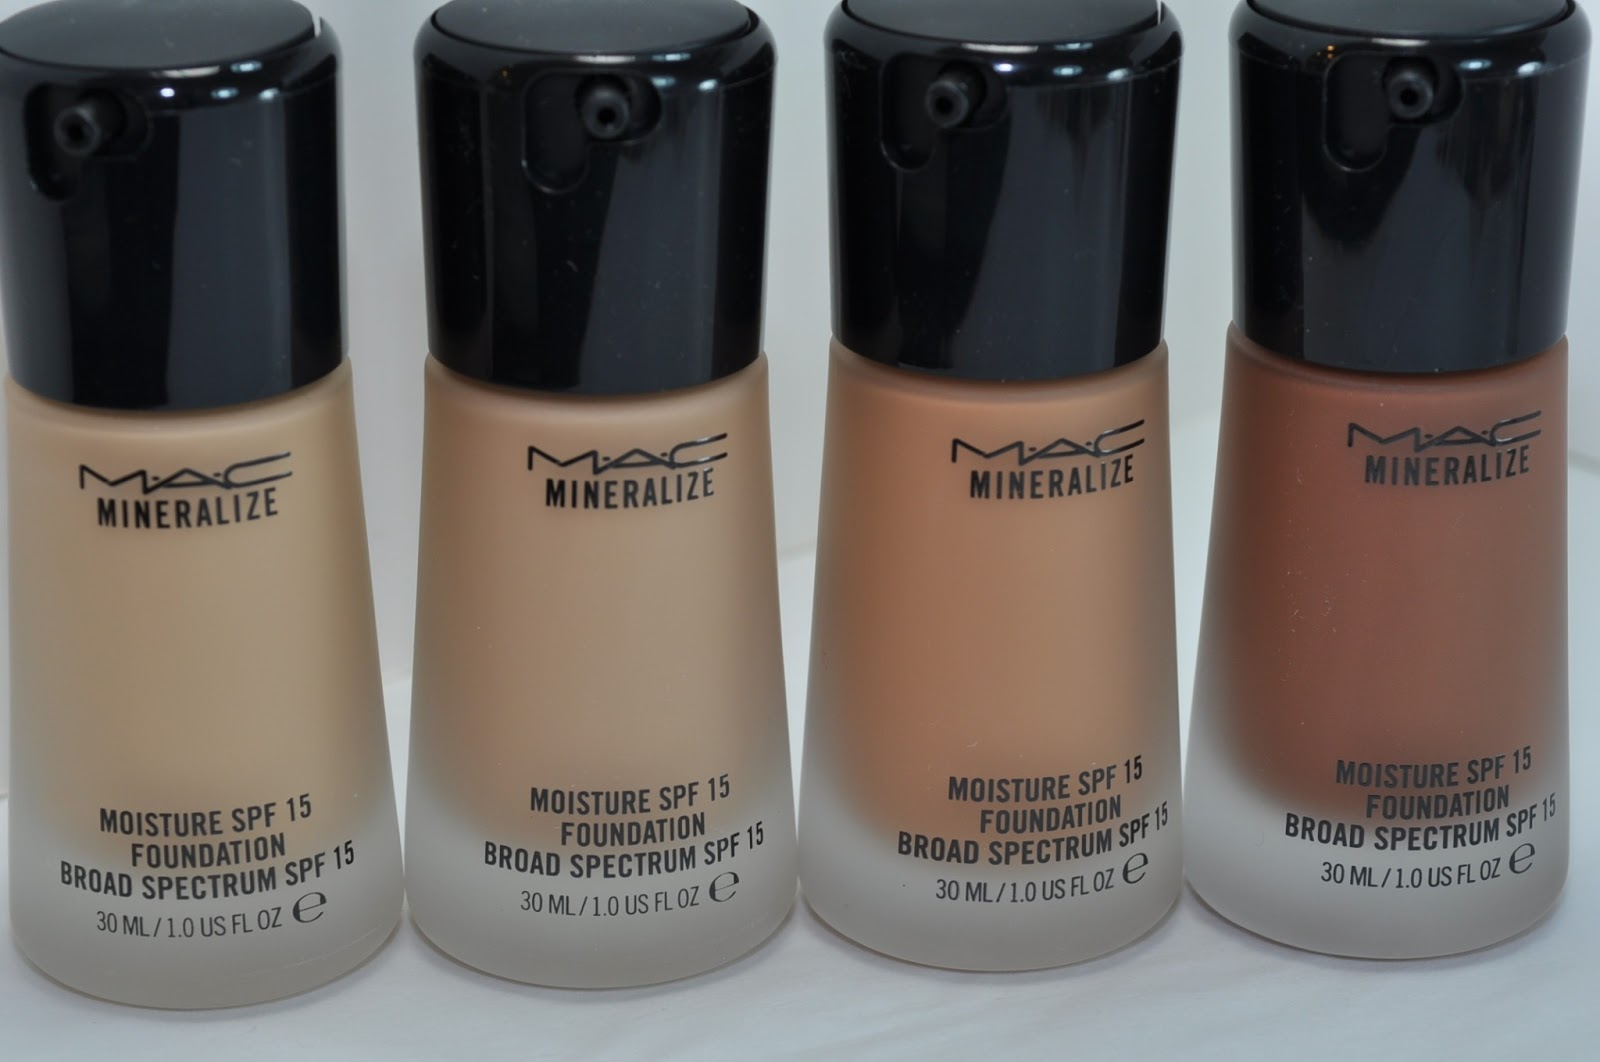 Mac Mineralize Moisture Spf 15 Foundation Swatches Review The